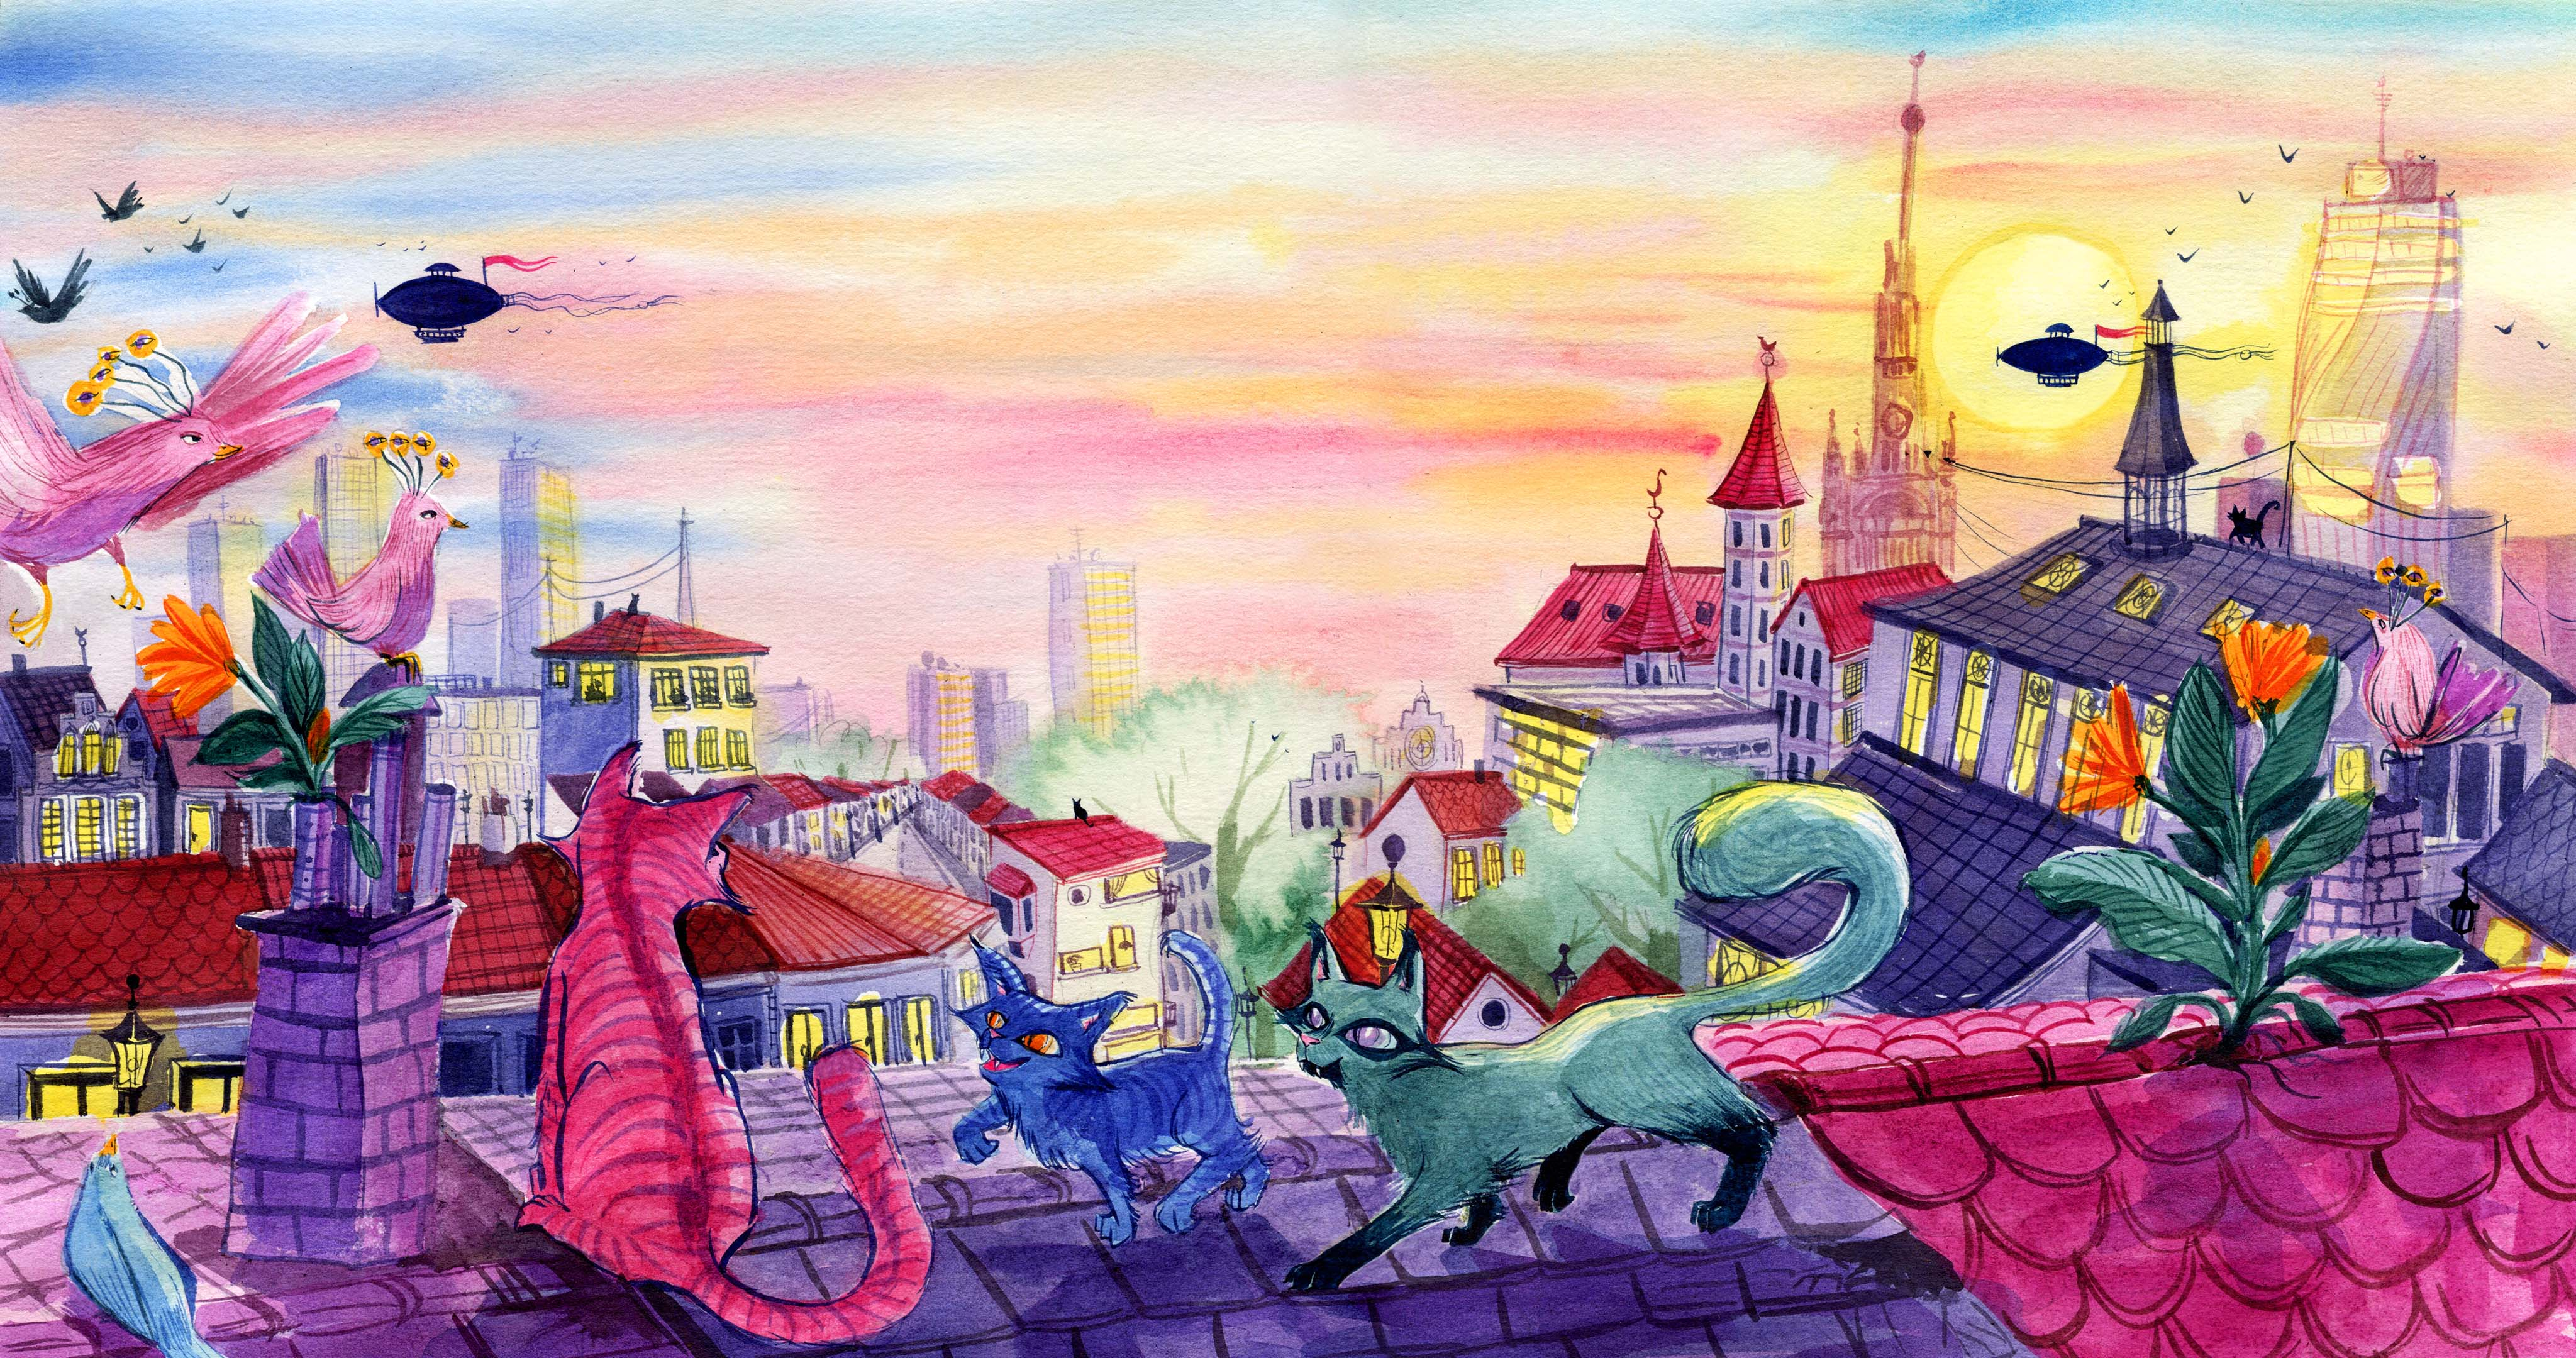 An illustration of cats on a roof with a cityscape behind them. One (pink) sits by a chimney and looks out into the distance, a tiny blue one is about to paw its tail playfully, and a green one watches the scene. There are a couple of birds by the chimney you are also looking out into the distance. The city is a mix of modern and classical buildings and there are a couple of zeppelins flying in the distance.